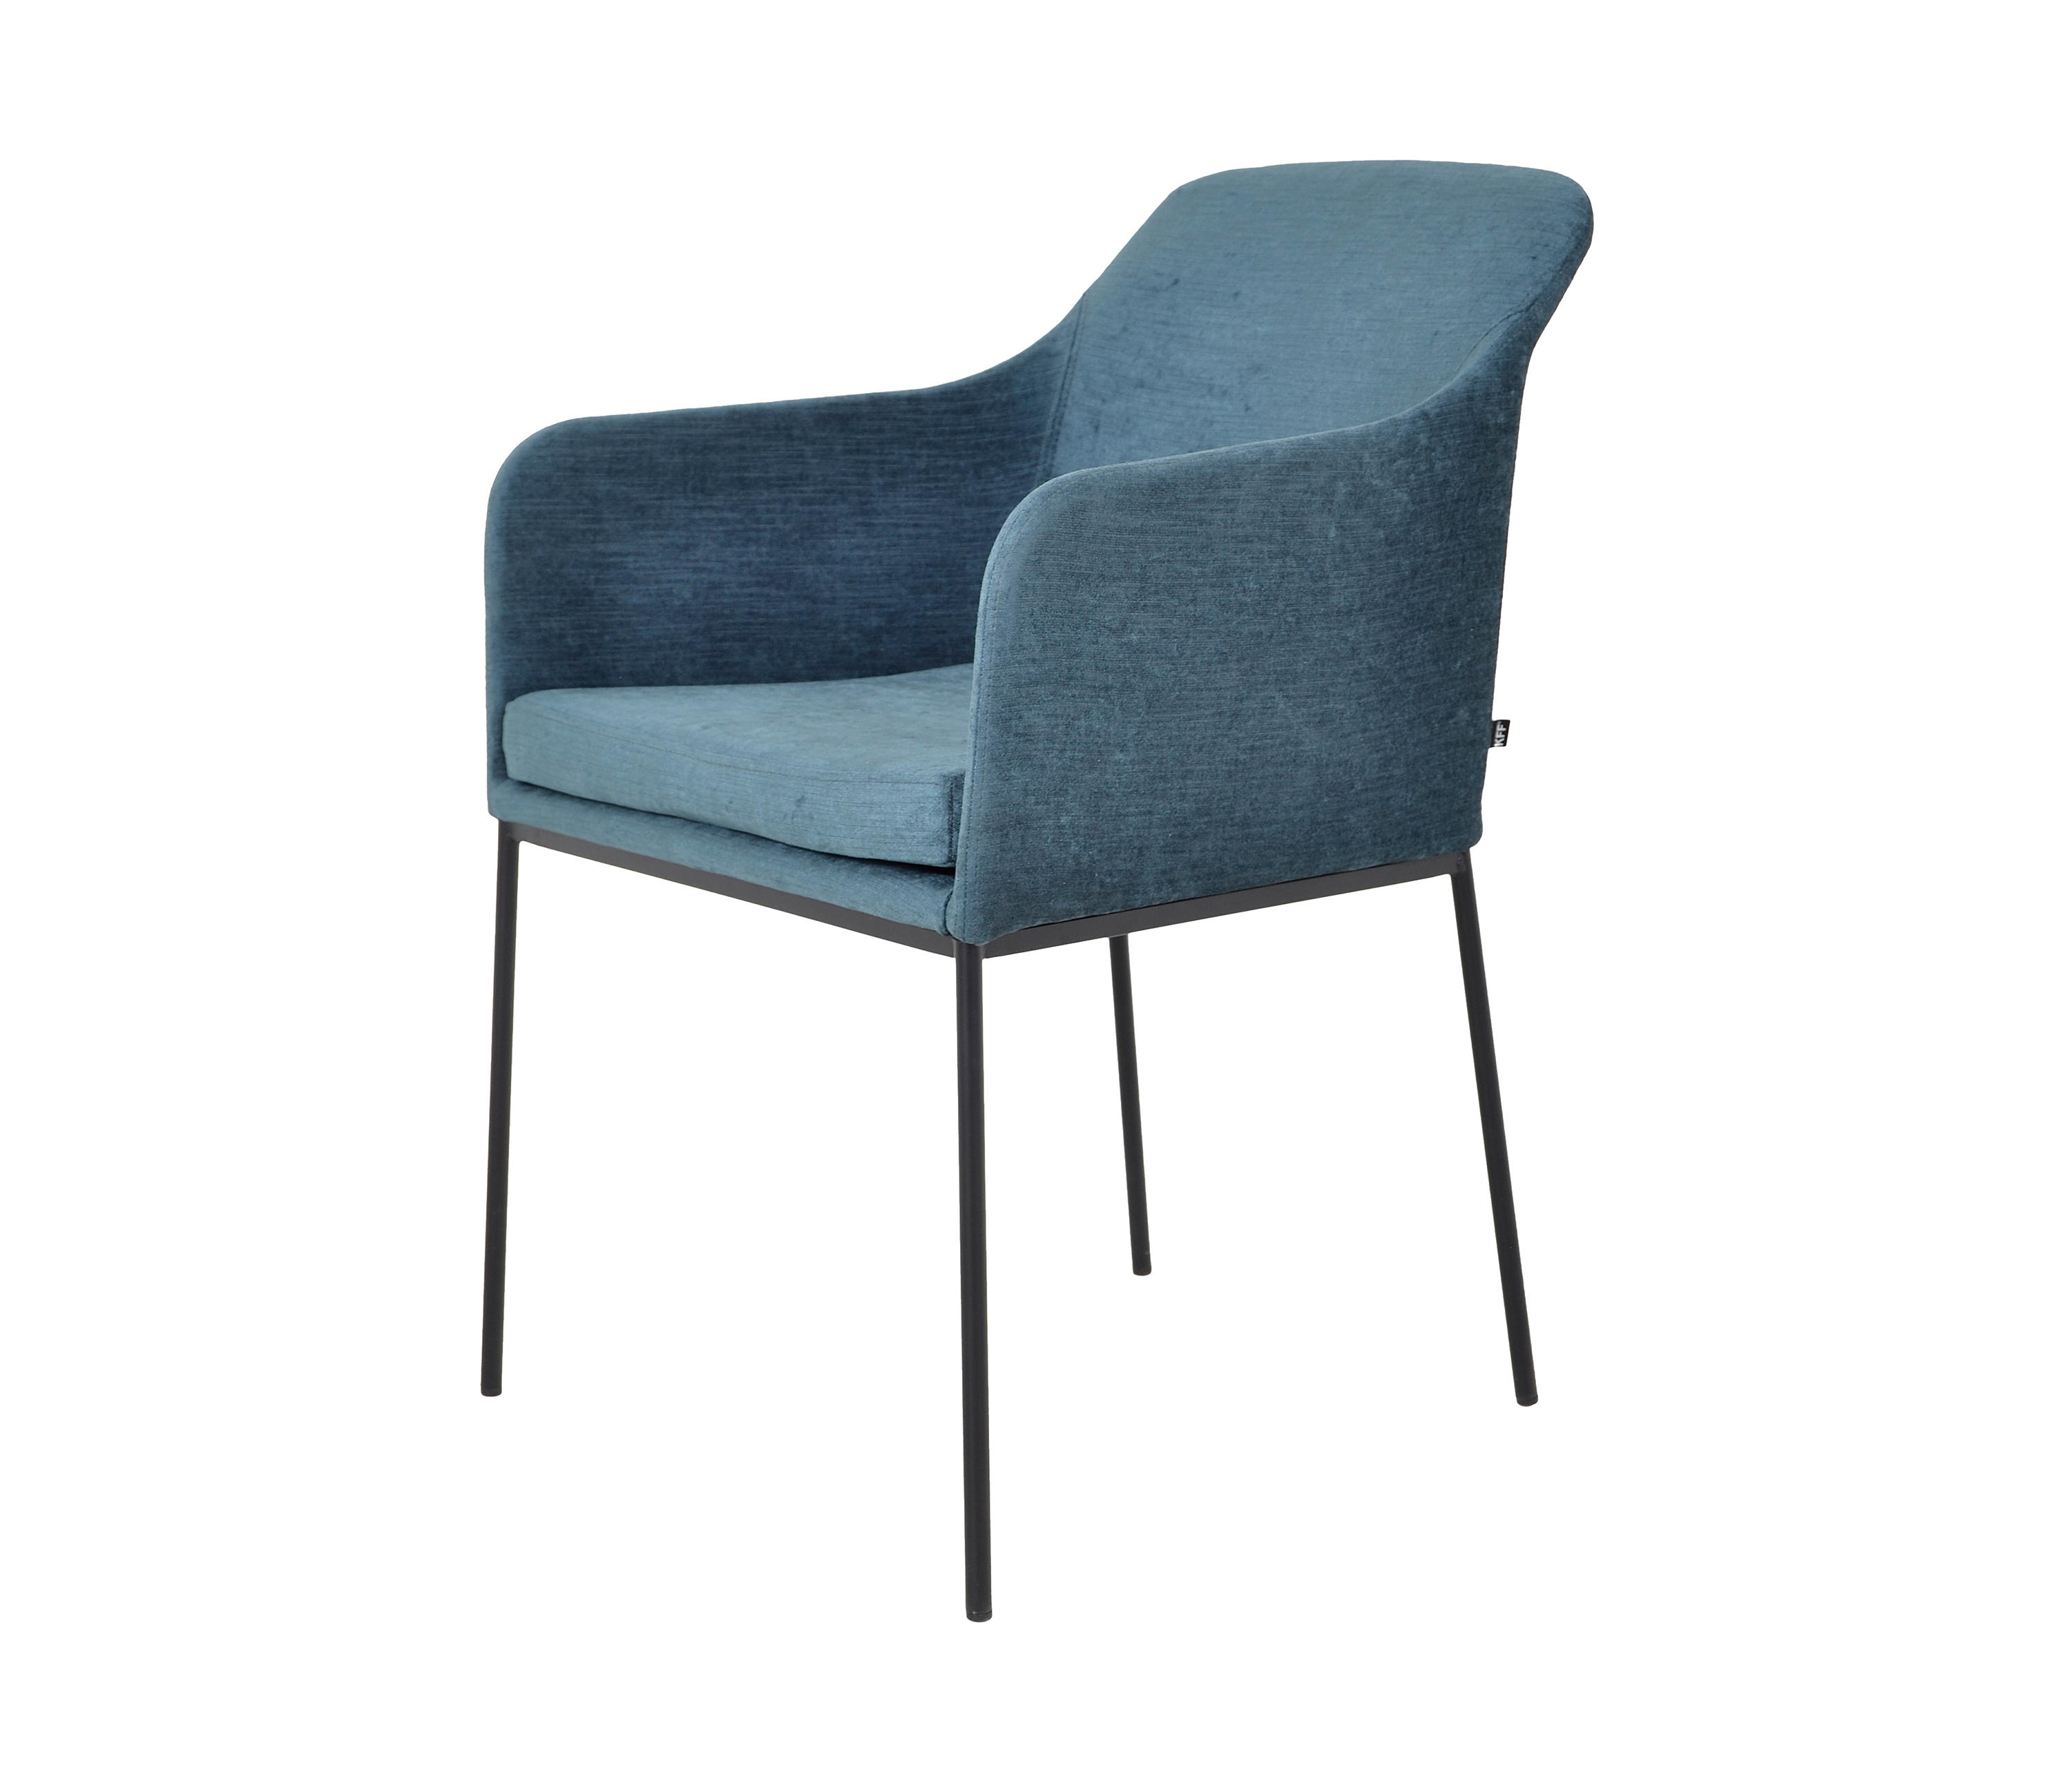 Youma Armchair Chairs From Kff Architonic